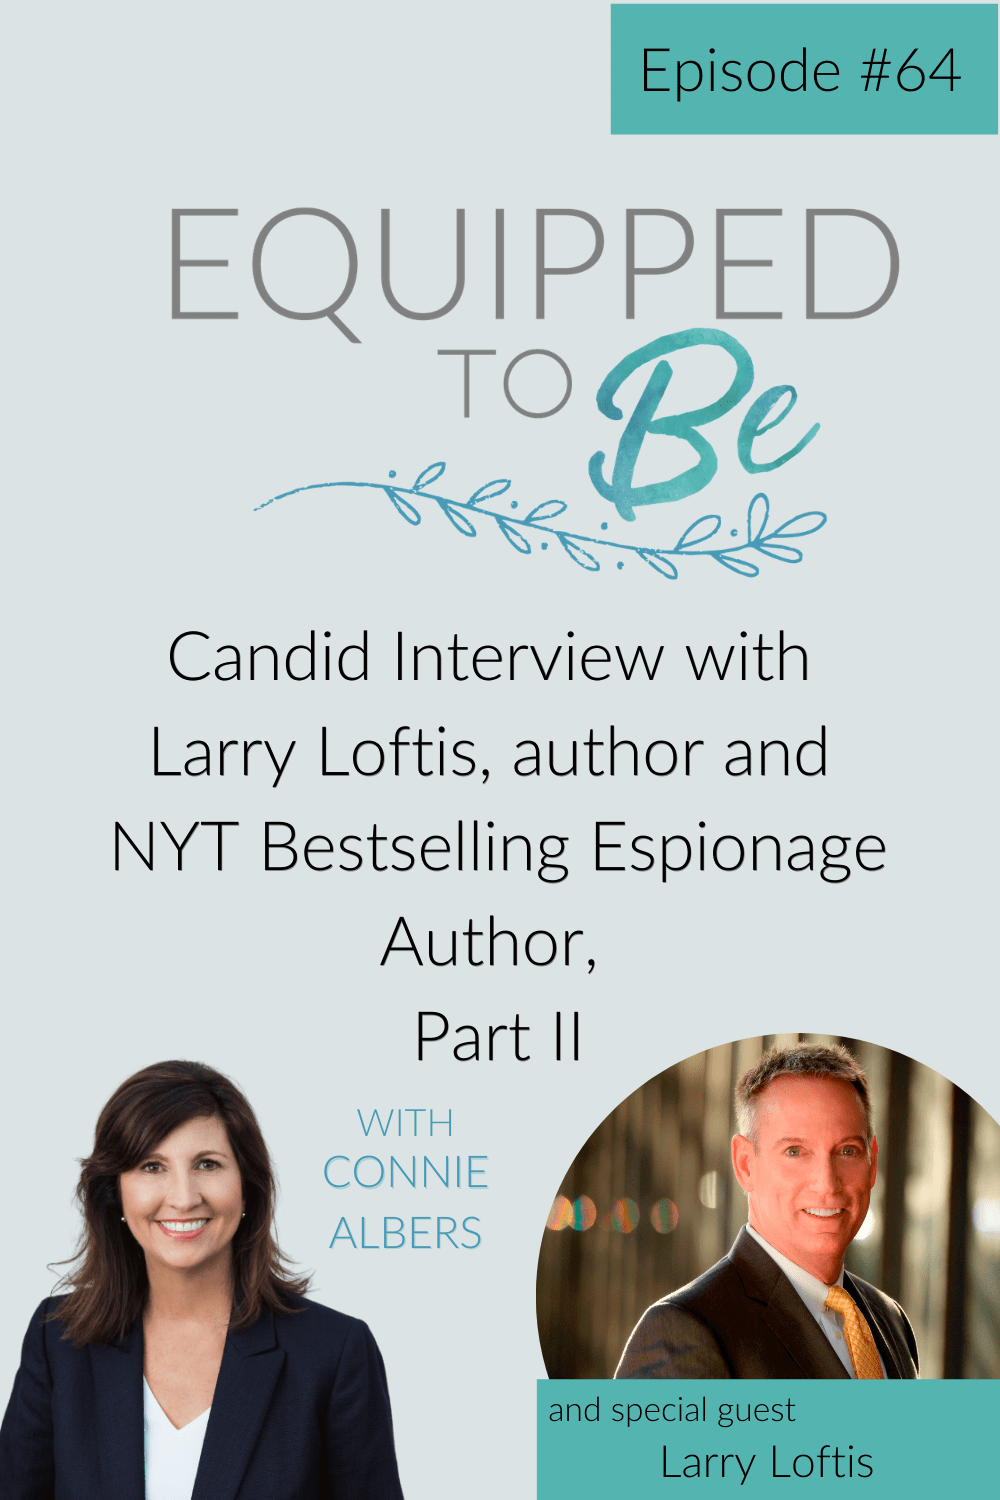 Candid Interview with Larry Loftis, author and NYT Bestselling Espionage Author, Part II - ETB #64